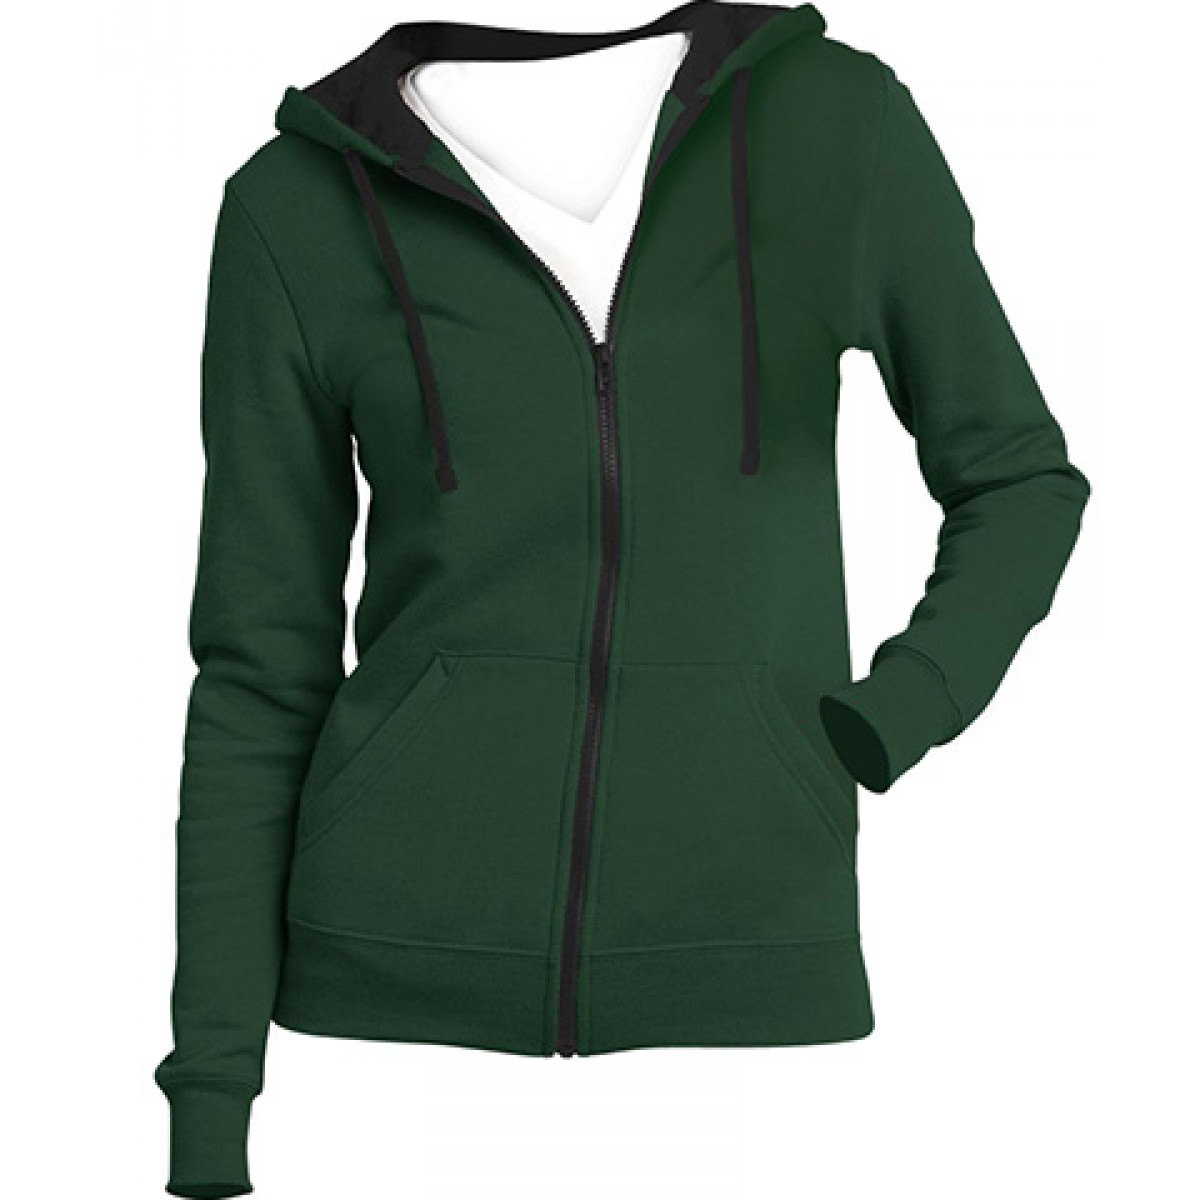 Juniors Full-Zip Hoodie-Green-S